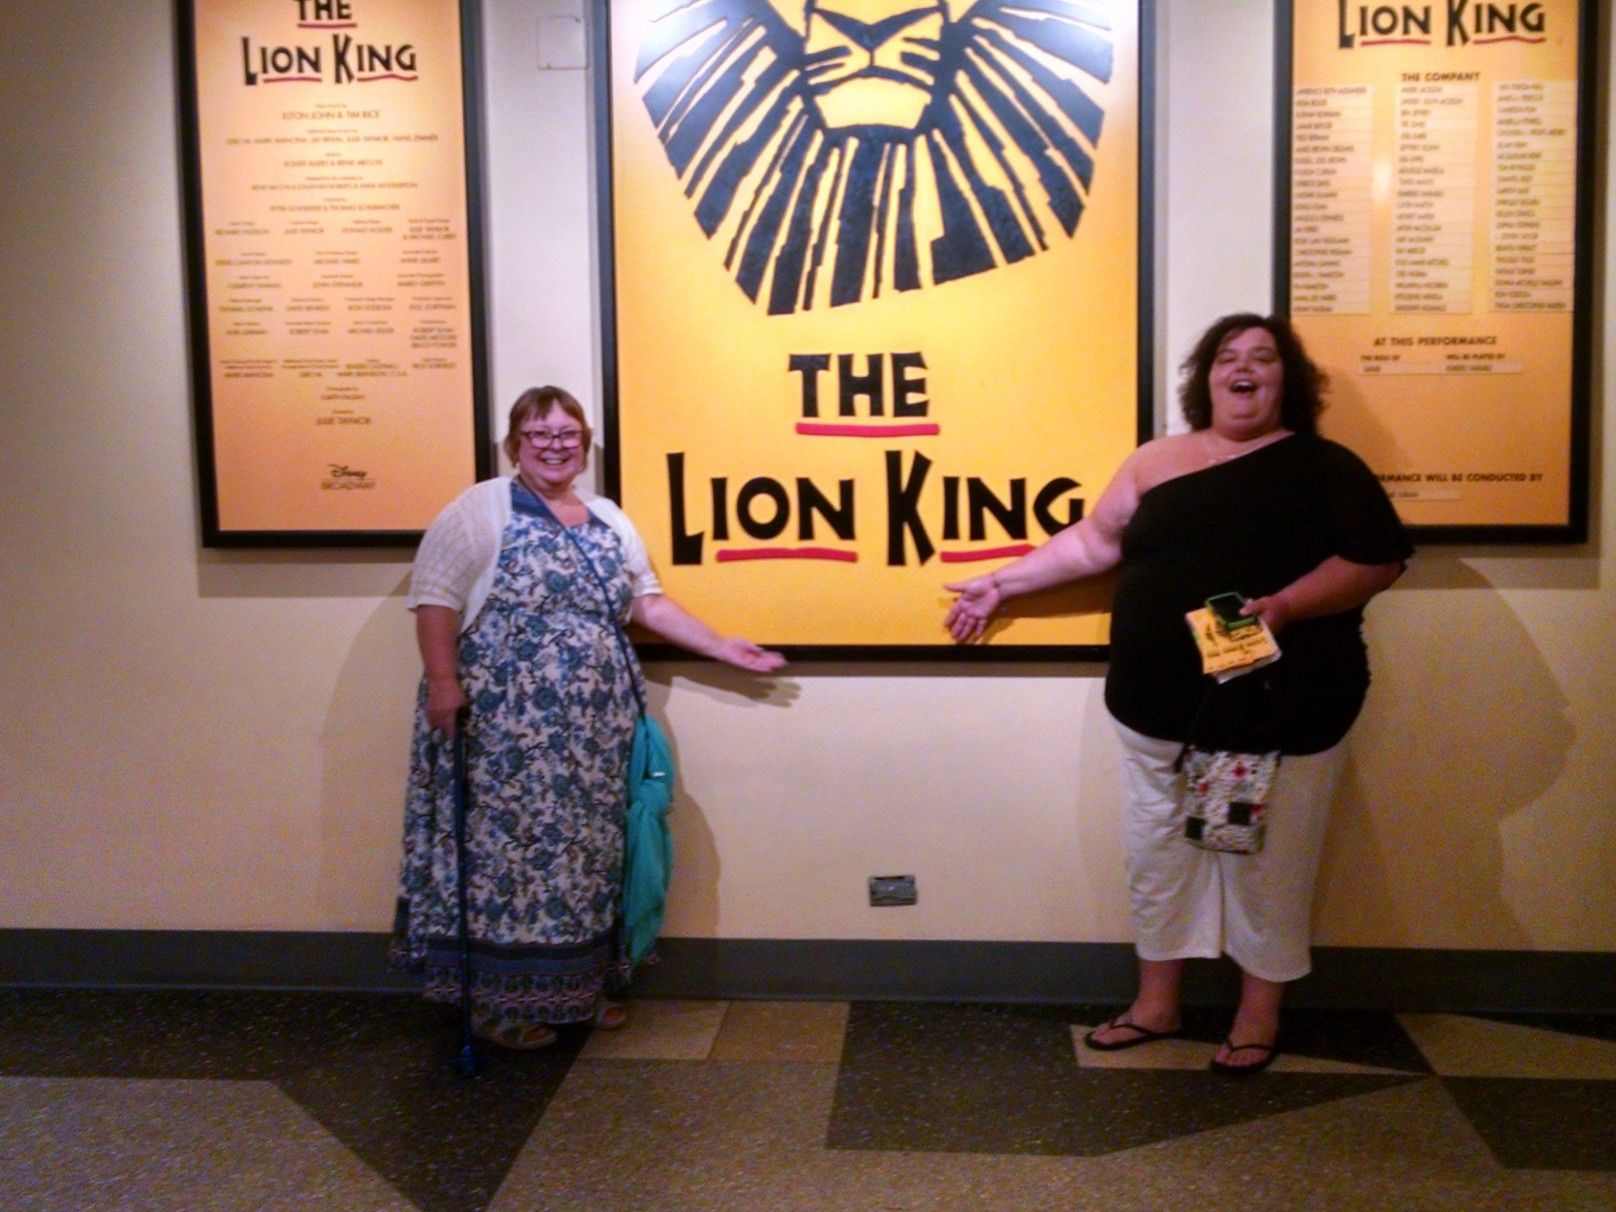 Pin By Crystal Ann On Family And Friends Lion King Home Decor Decor